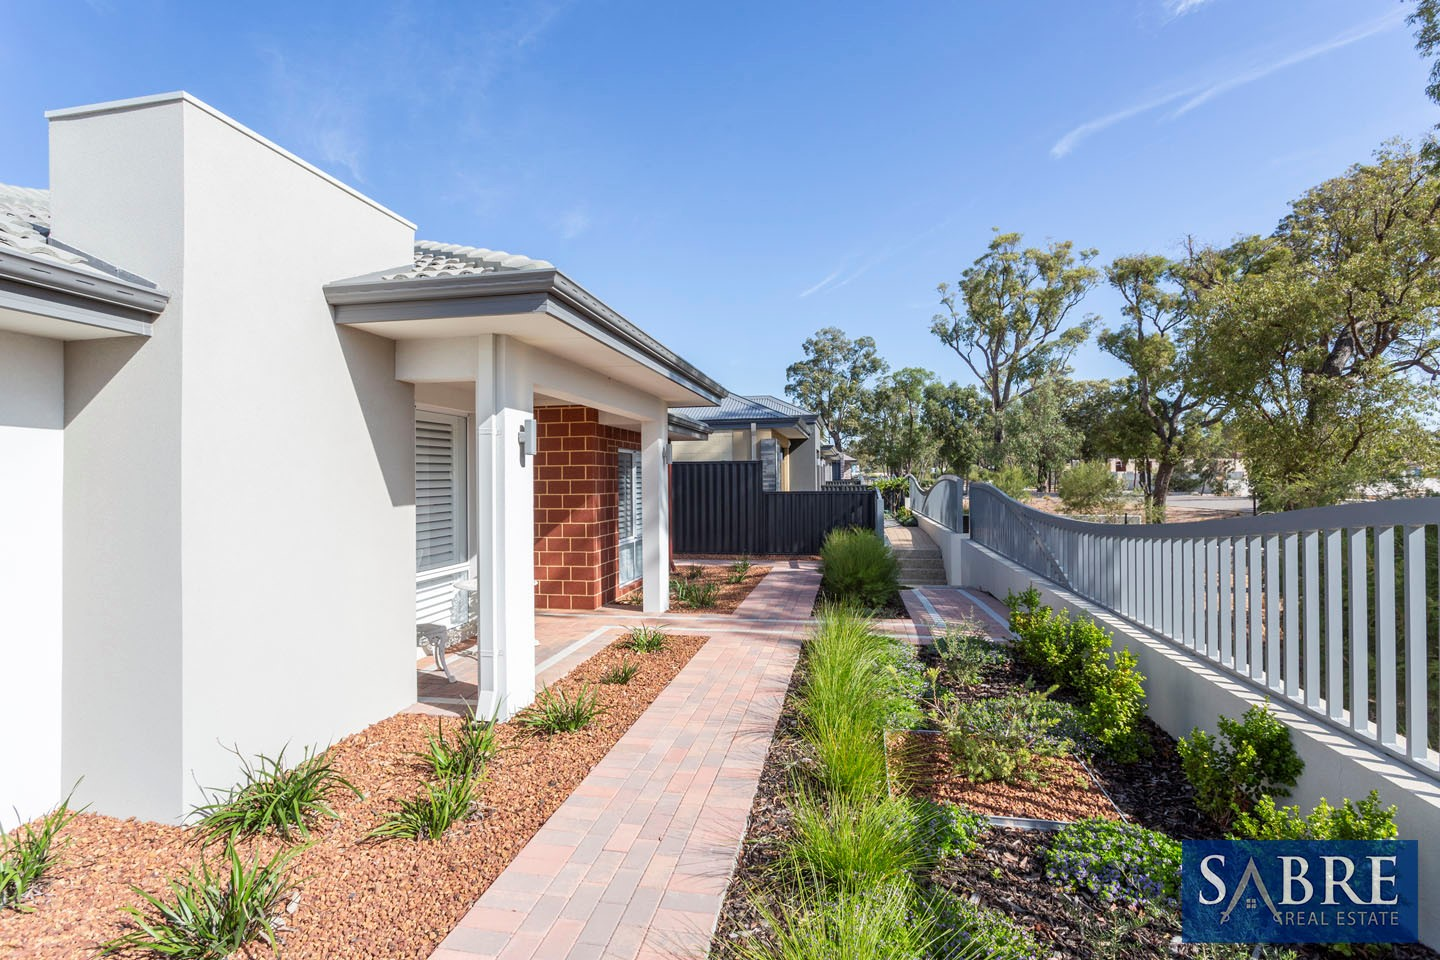 Property for sale in BUSHMEAD